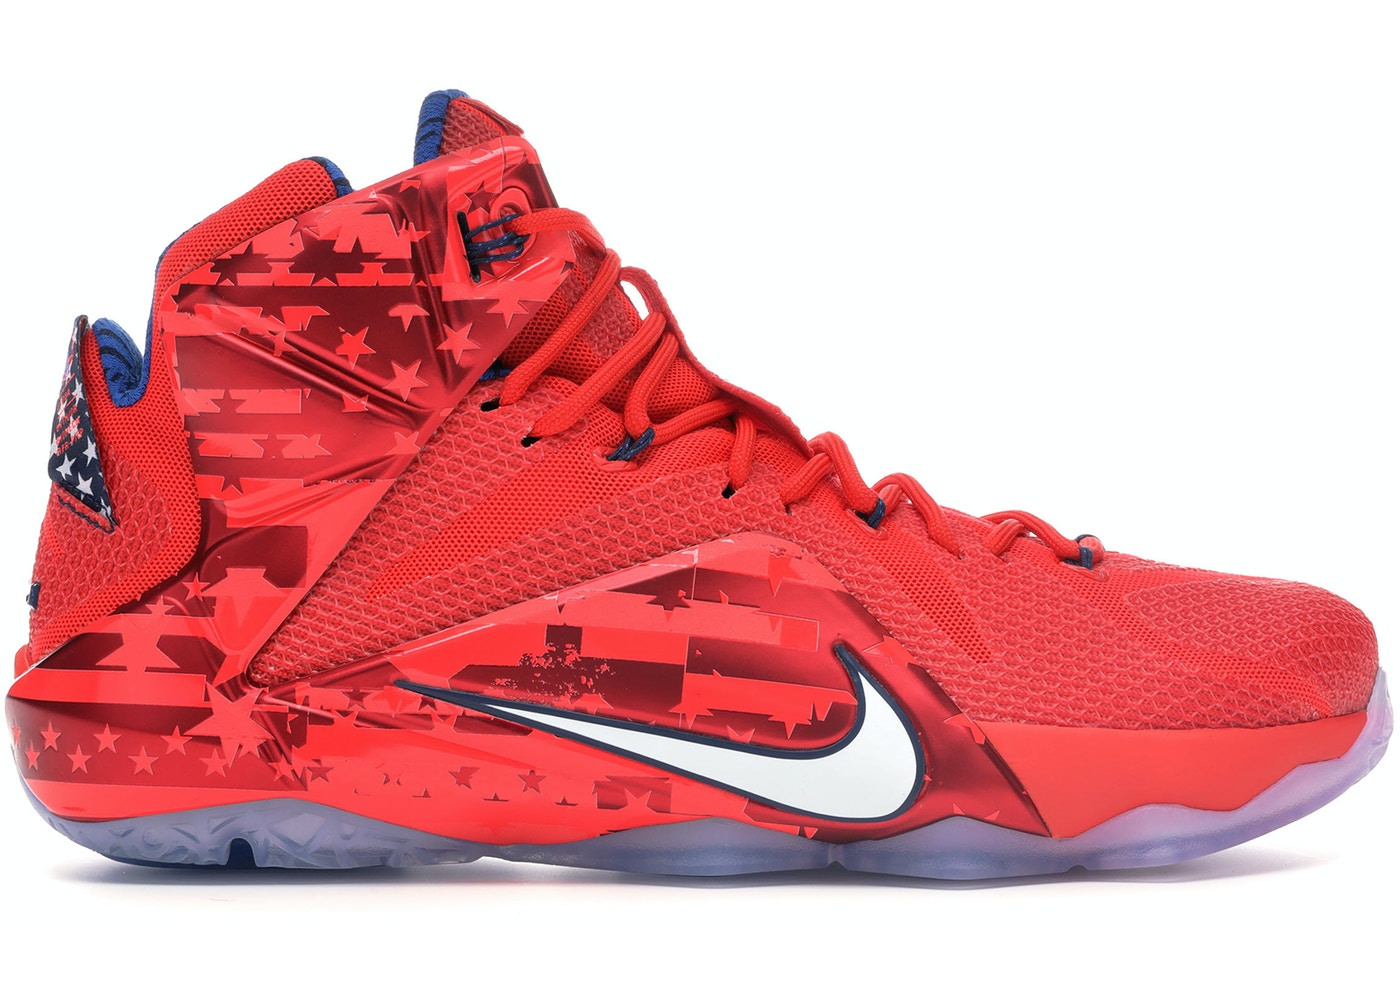 sale retailer cce76 88b14 LeBron 12 Independence Day - 684593-616